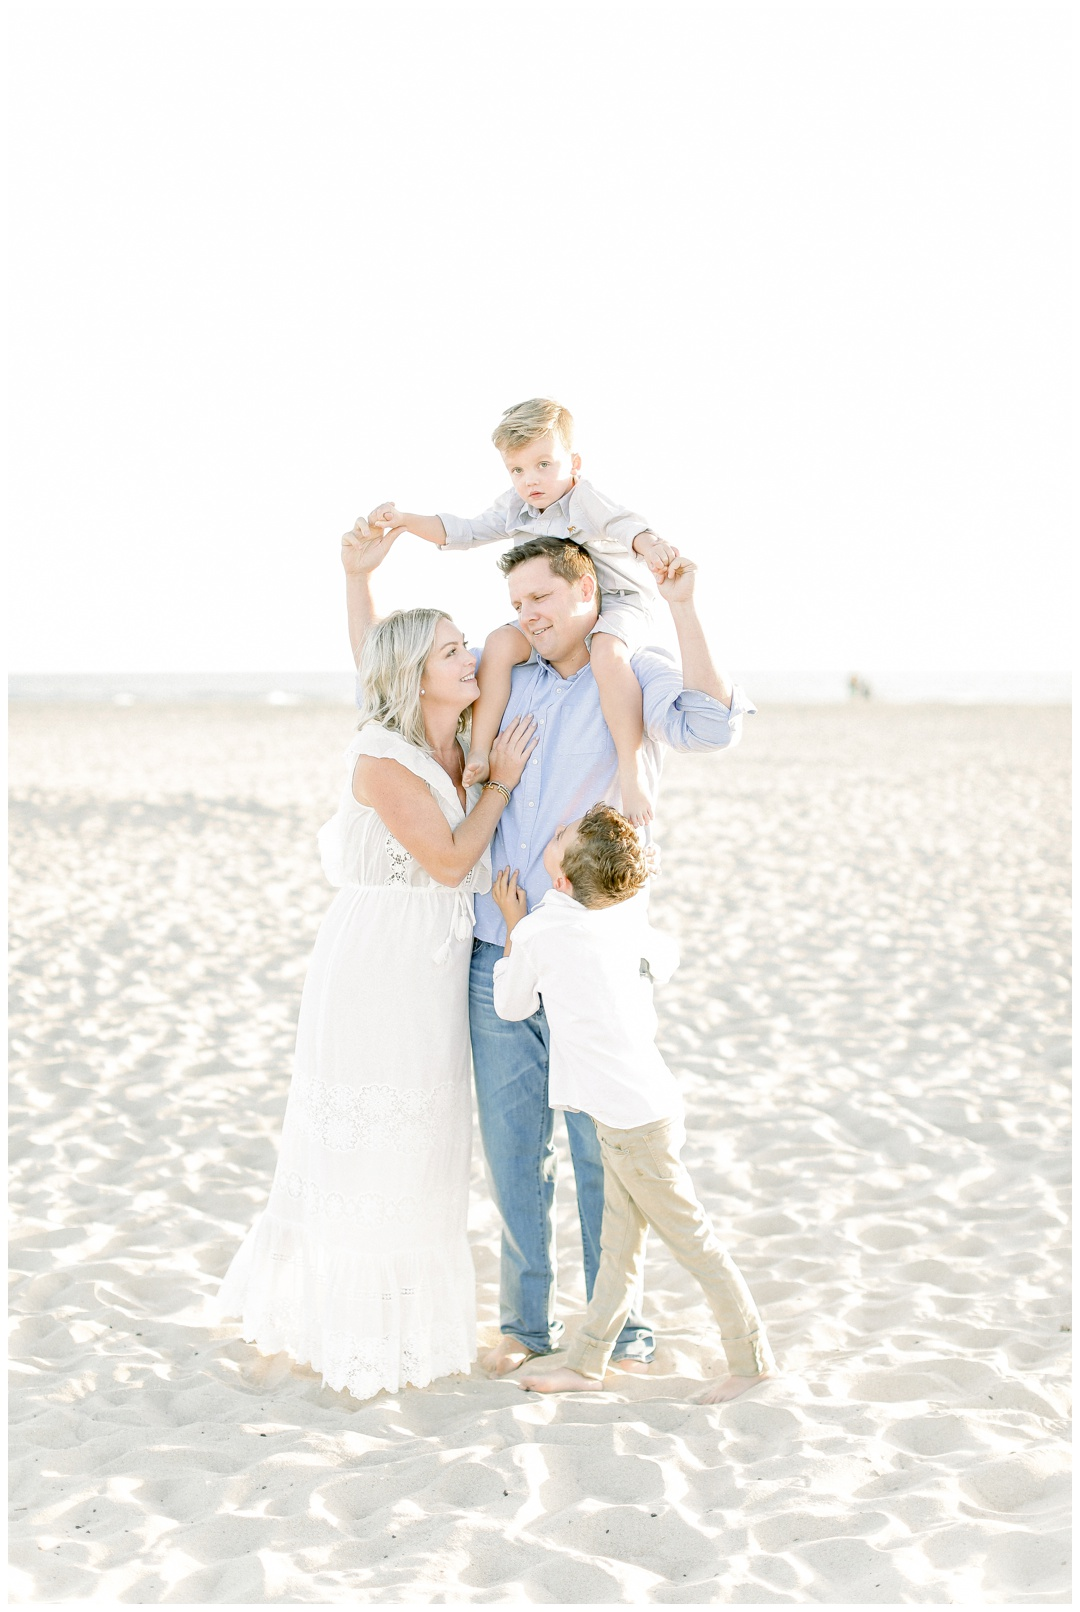 Newport_Beach_Family_Photographer_Newport_Beach_Newborn_Photographer_Orange_County_Family_Photographer_Cori_Kleckner_Photography_Huntington_Beach_San_Clemente_Family_Session_Photography__2352.jpg